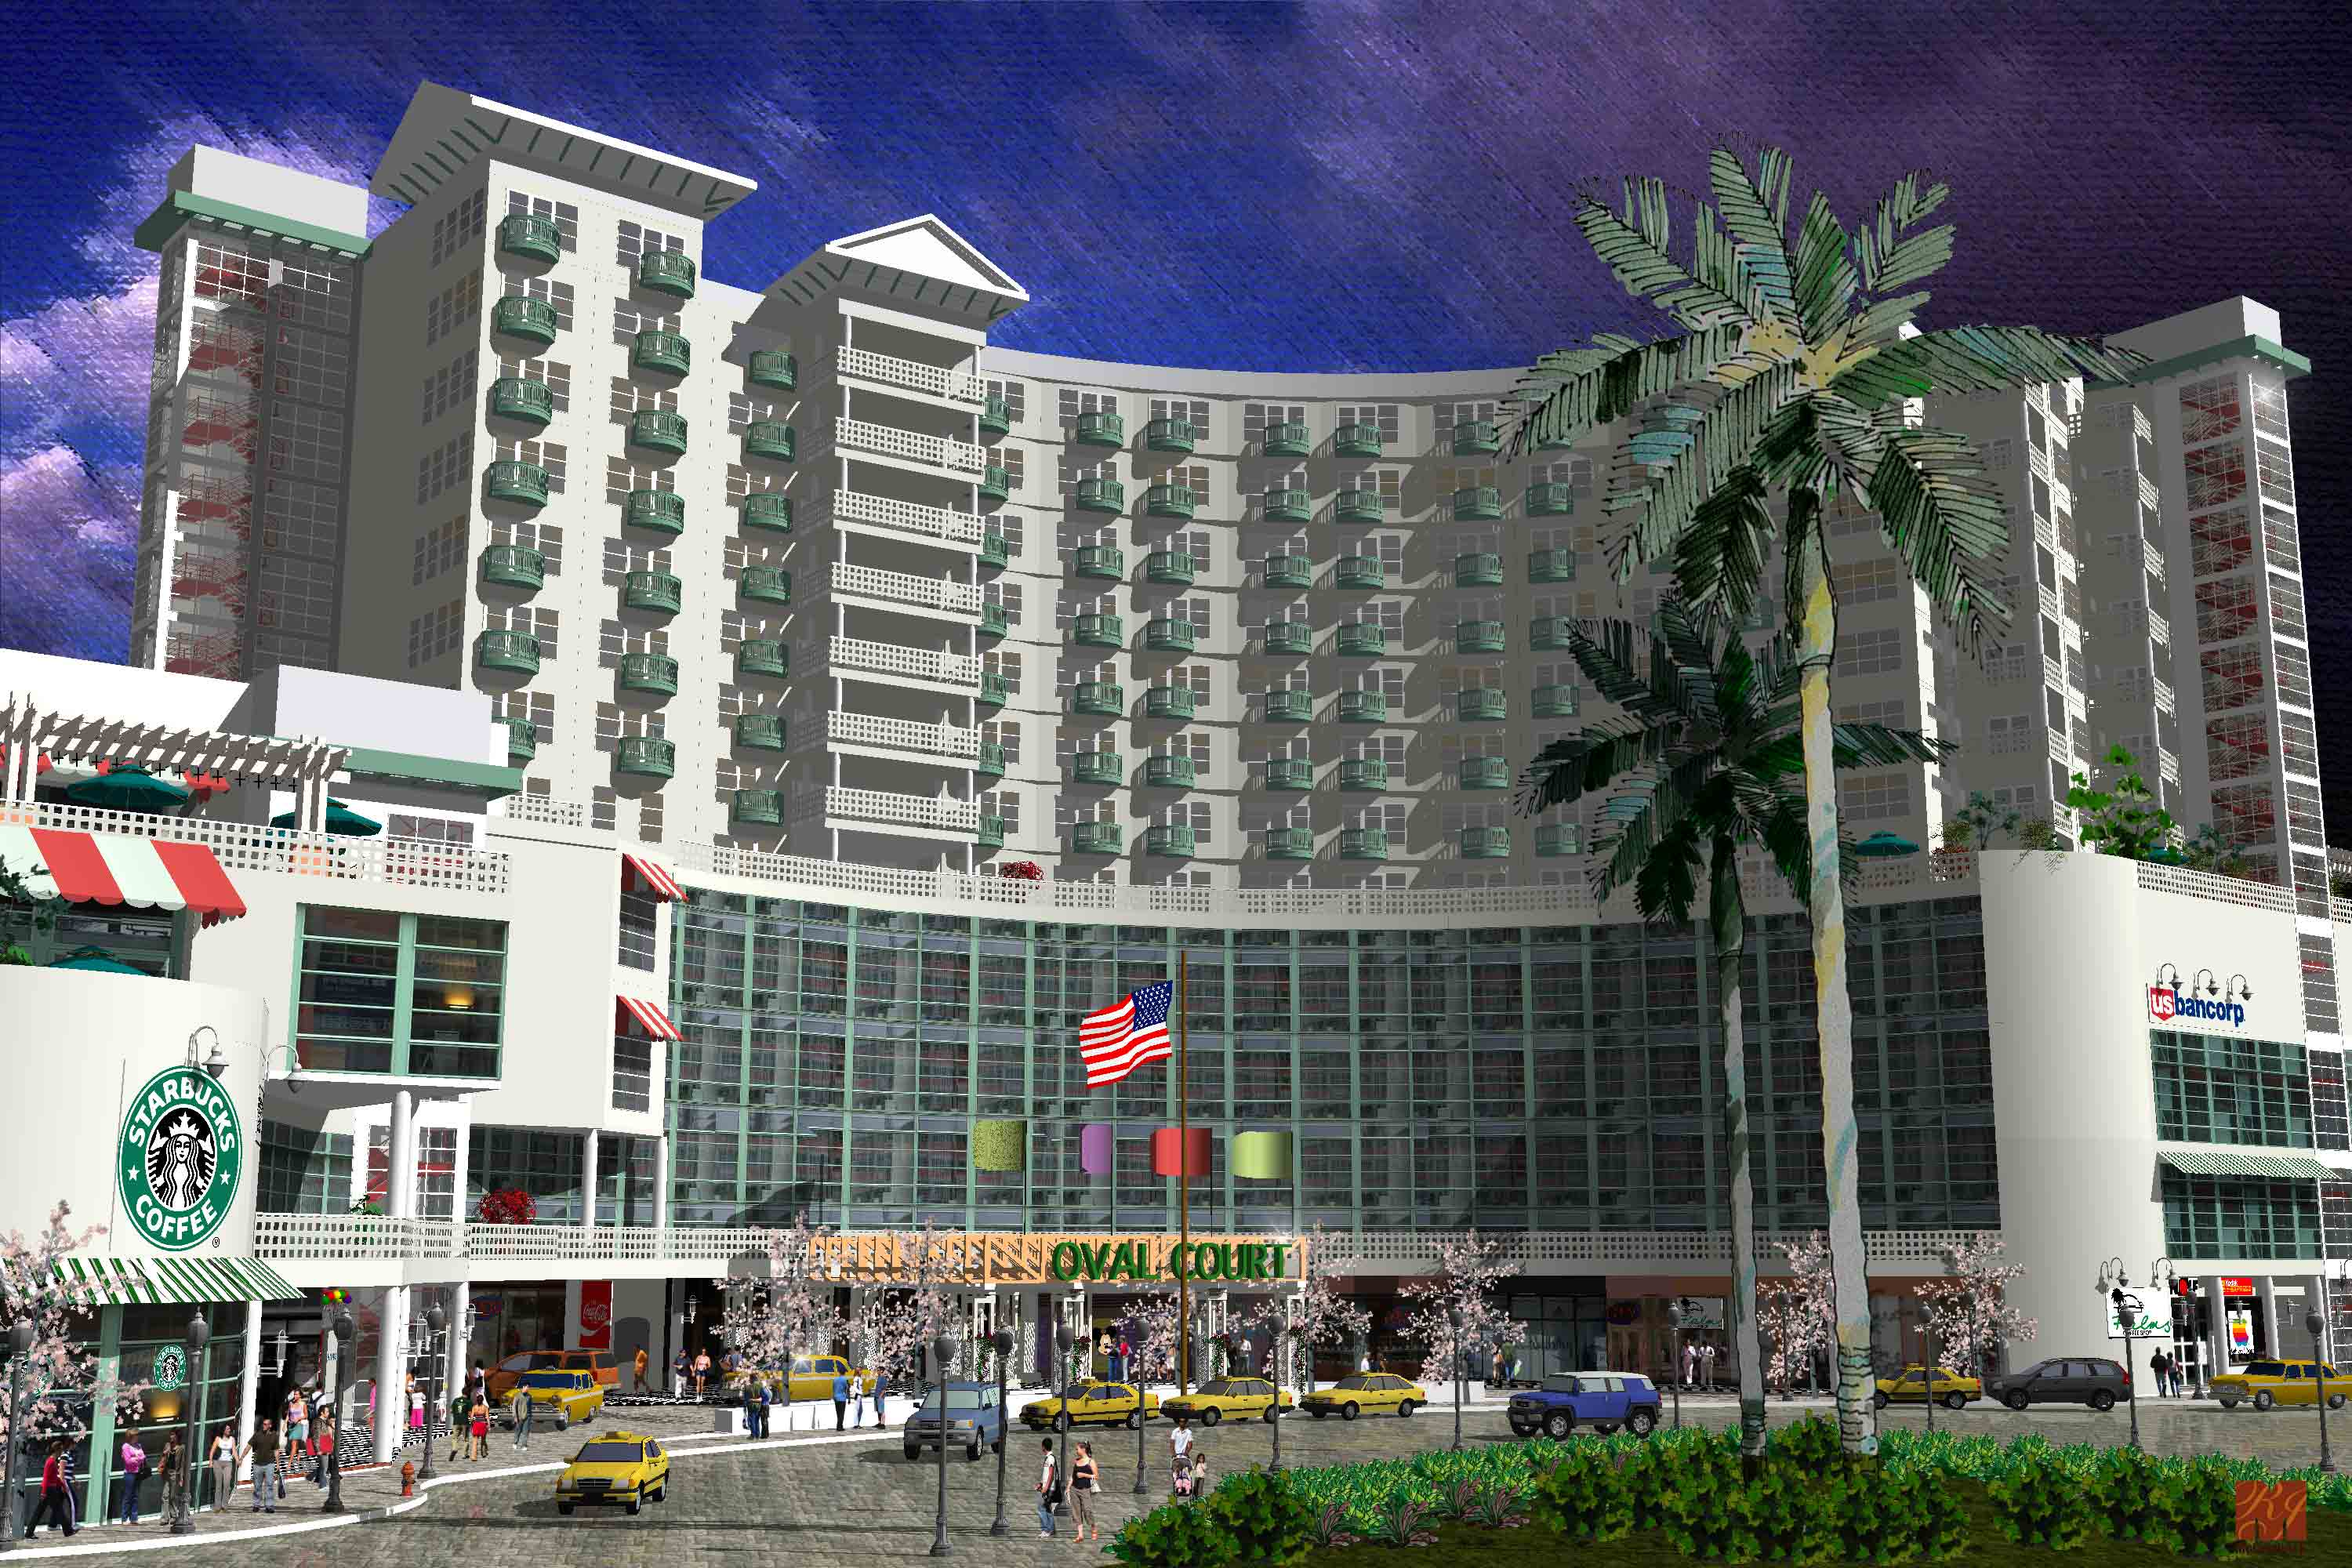 Oval Court Hotel Fort Myers Fl